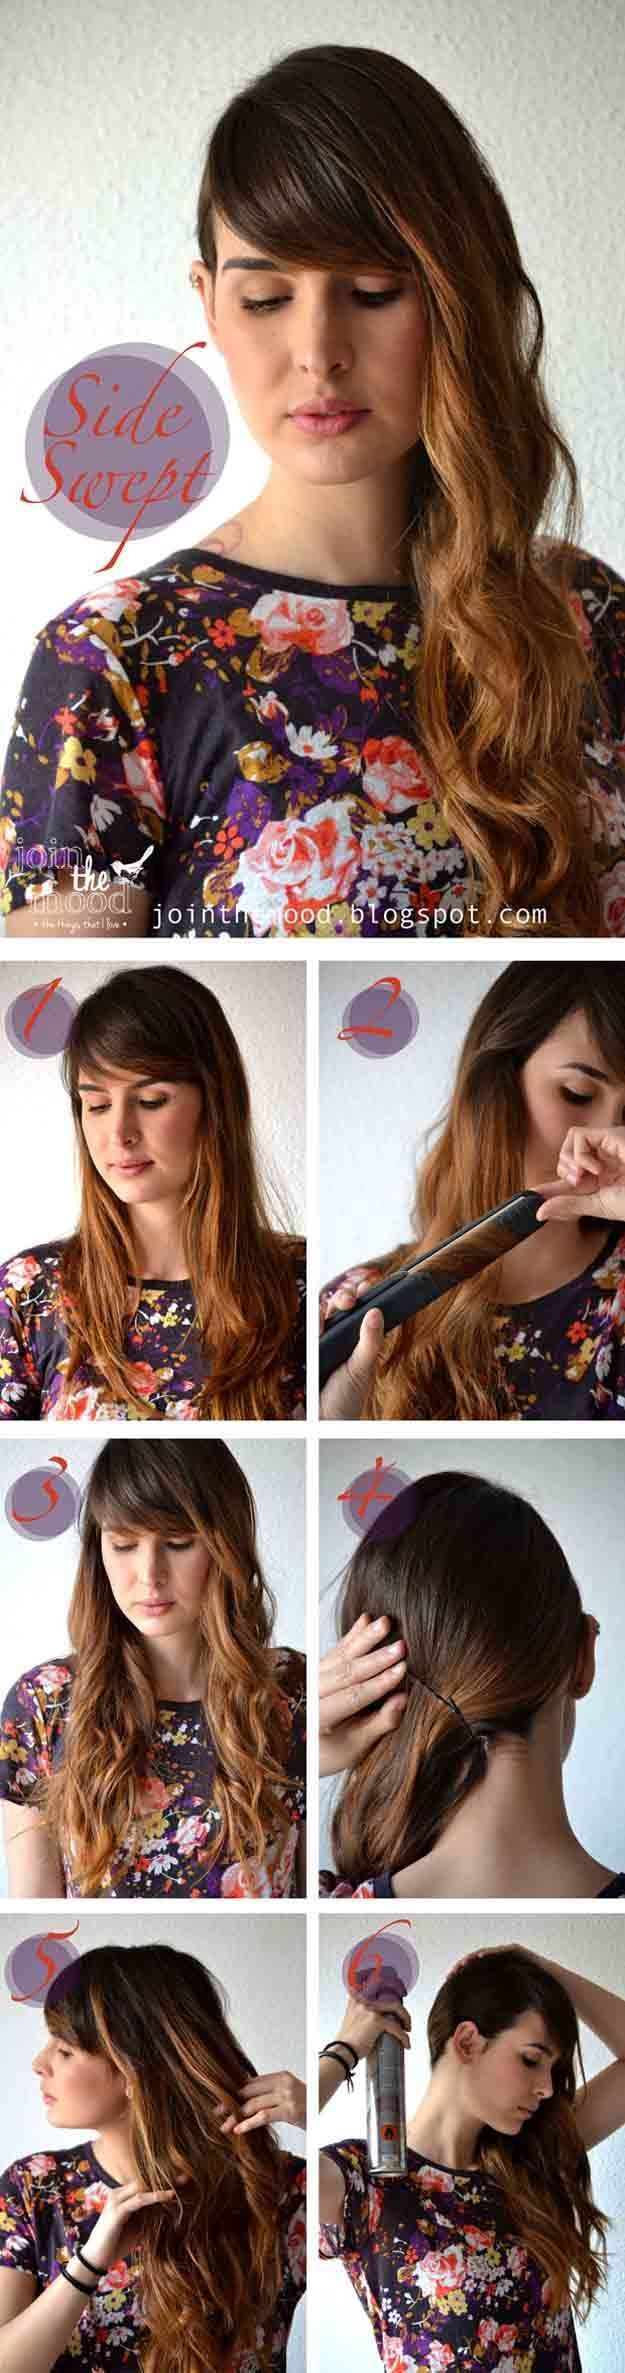 Fast and easy hairstyles for smooth hair swept sideways Popular haircuts and … #beloved #simple #dresses # swept #smooth #fast #fatly – #popular #simple #corsals #for # swept #smooth #hair #haircuts #fast #sided #and